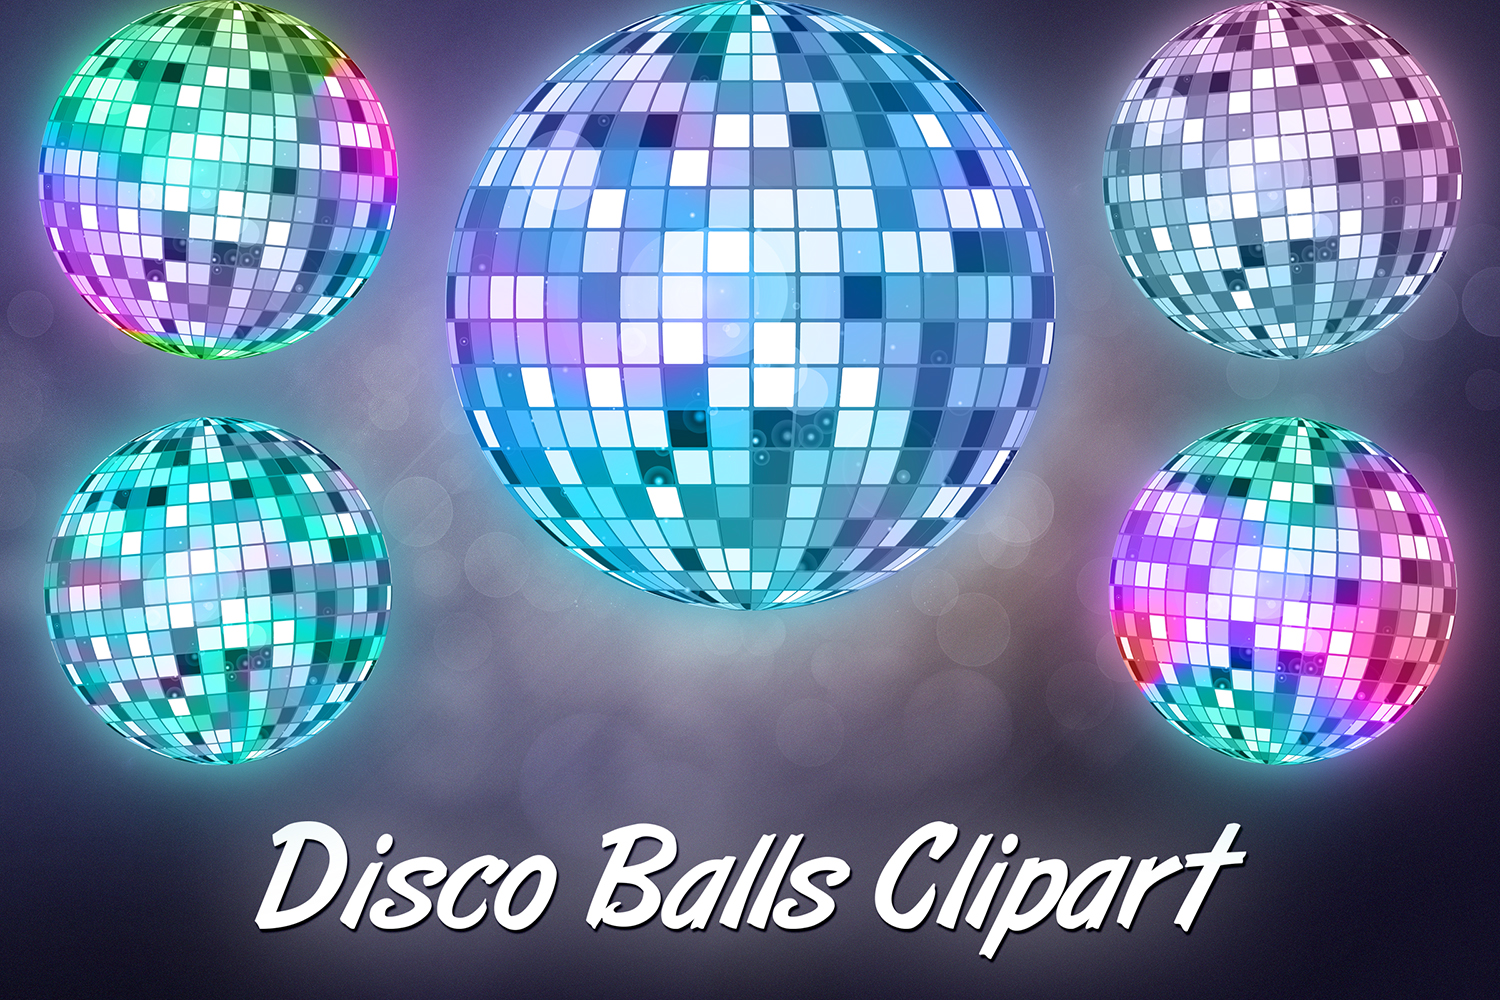 Disco Lights Clipart, Unicorn Party example image 1